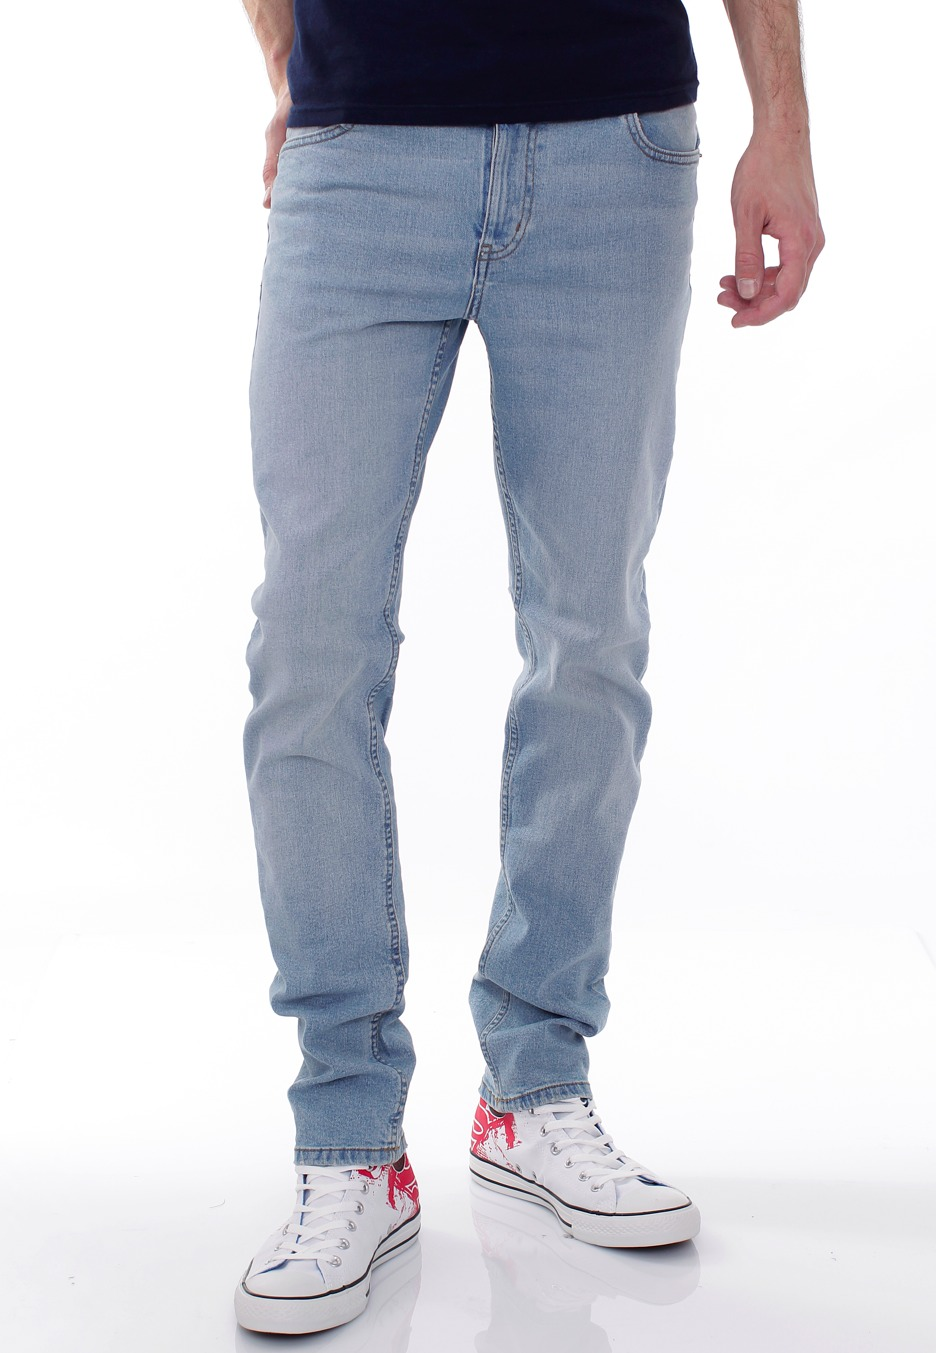 Shop mens jeans cheap sale online, you can buy black jeans, skinny jeans, slim fit jeans and ripped jeans for men at wholesale prices on distrib-u5b2od.ga FREE Shipping available worldwide.